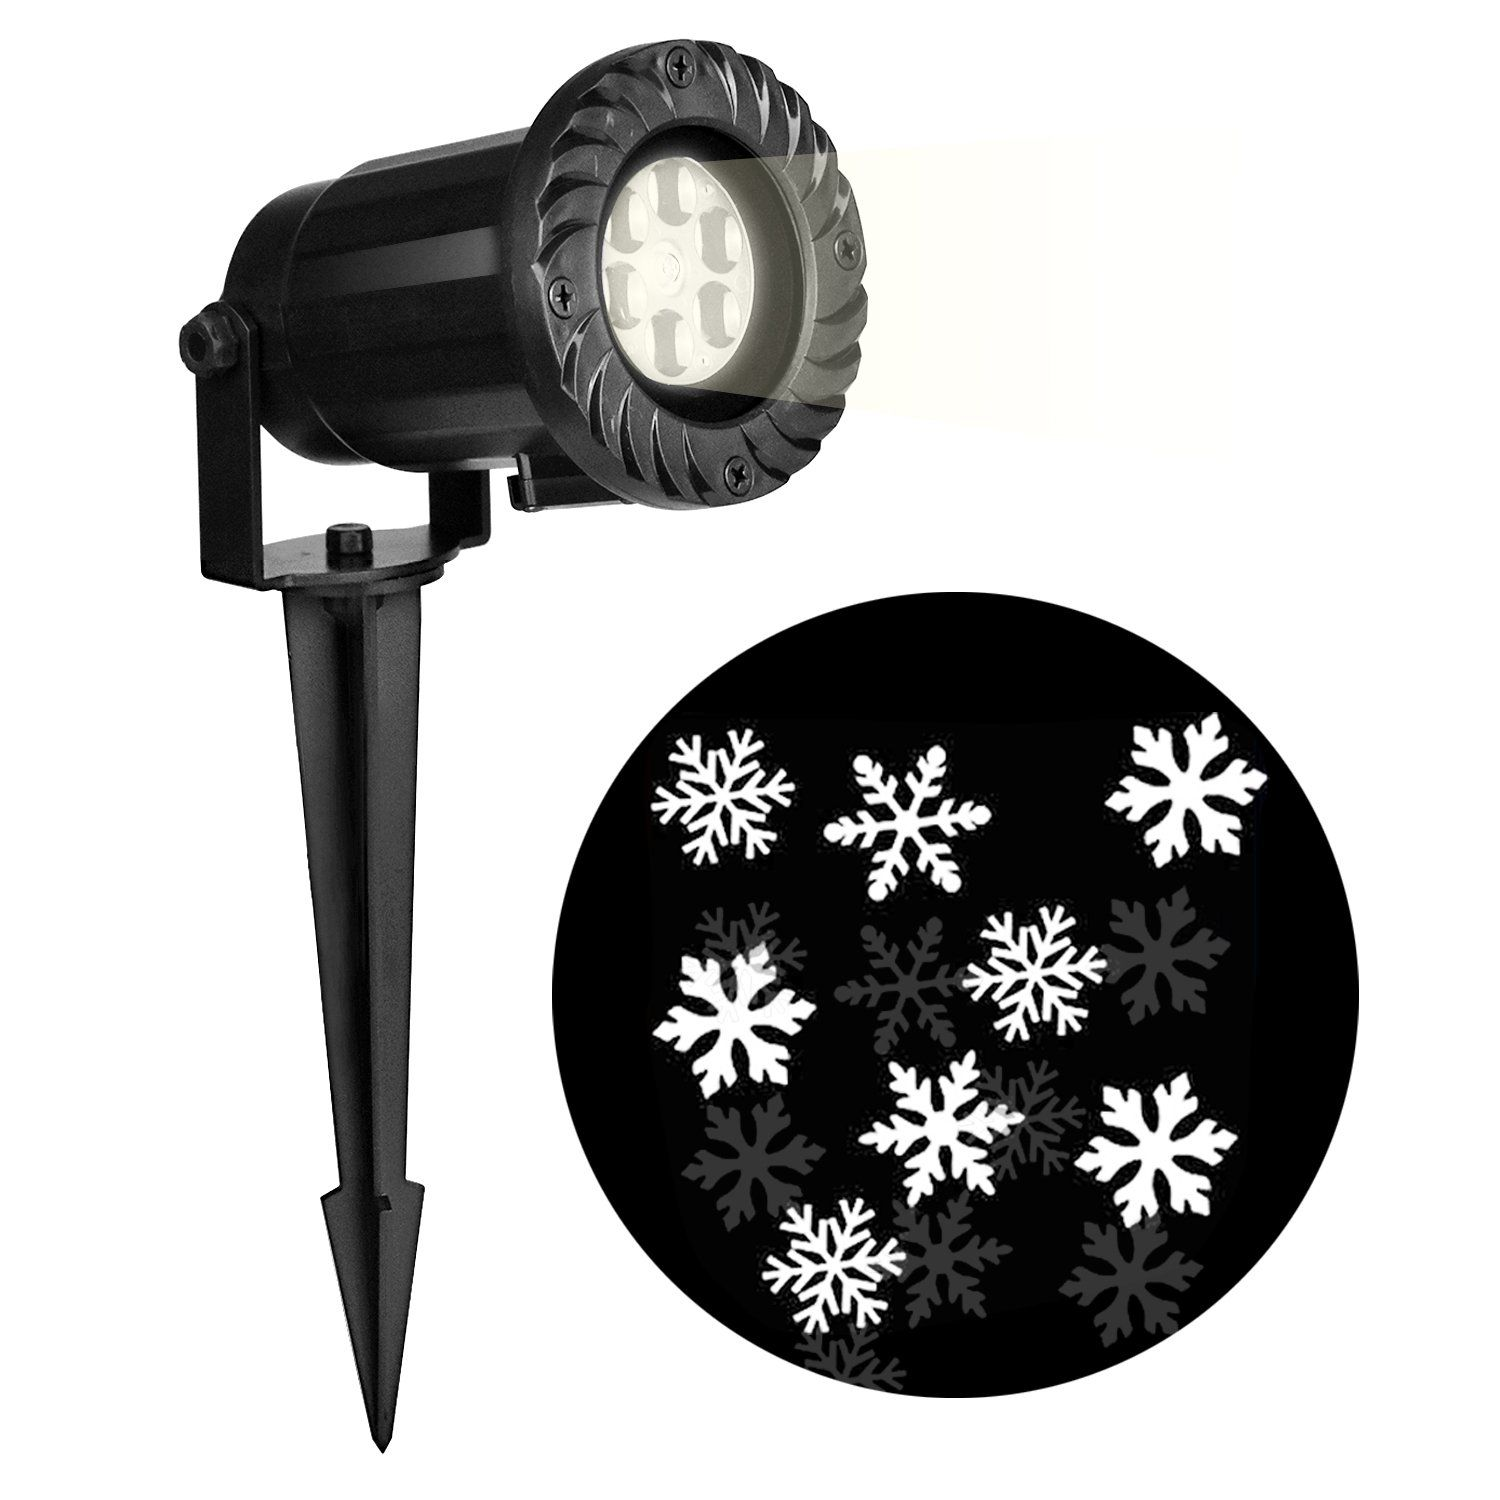 Christmas Projector Light,Decoration Christmas Light,Snowflakes ...